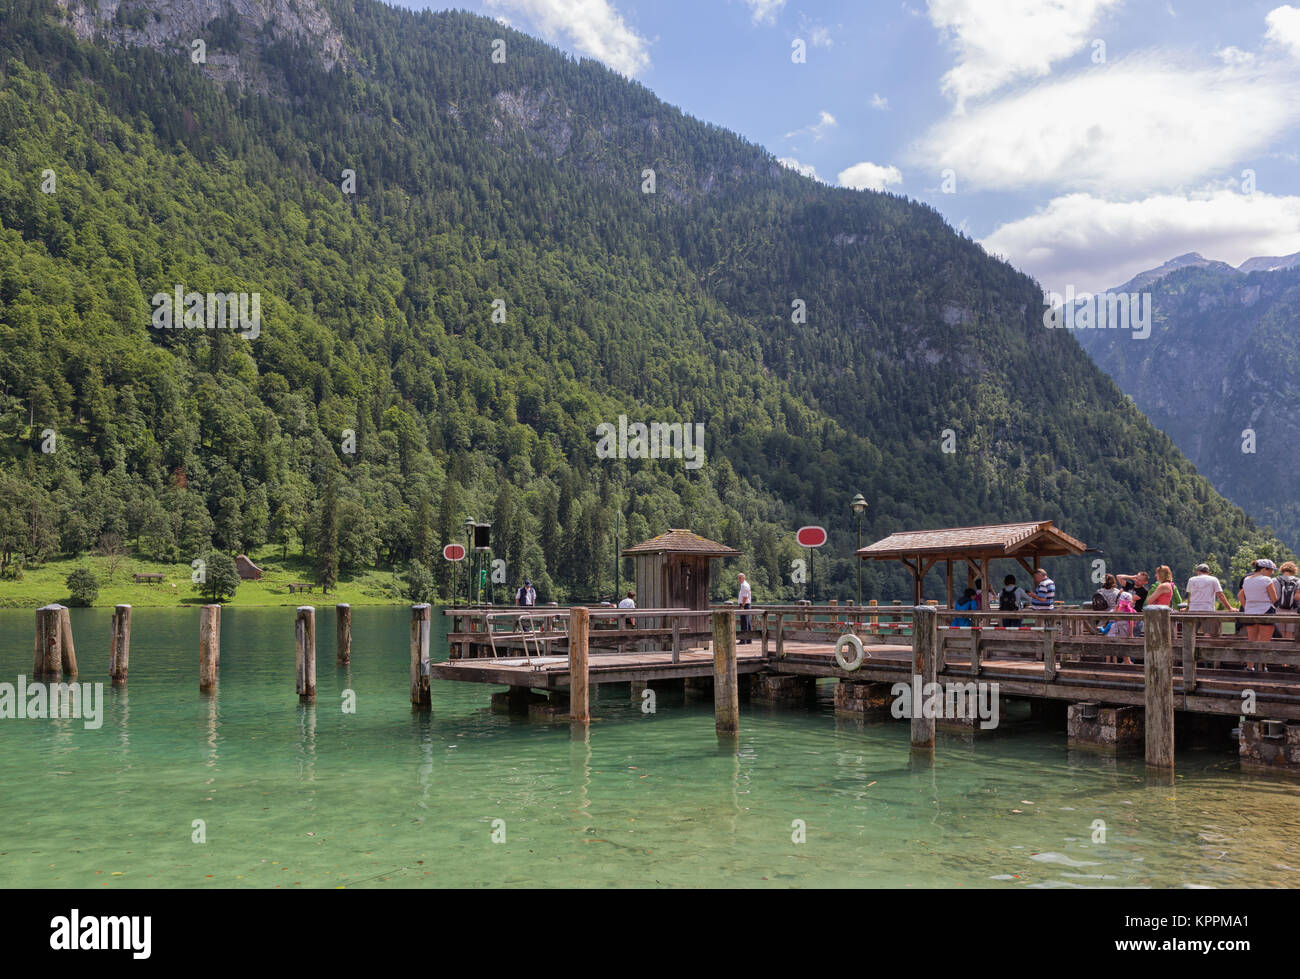 People on pier waiting for launch ship at Konigssee - Stock Image